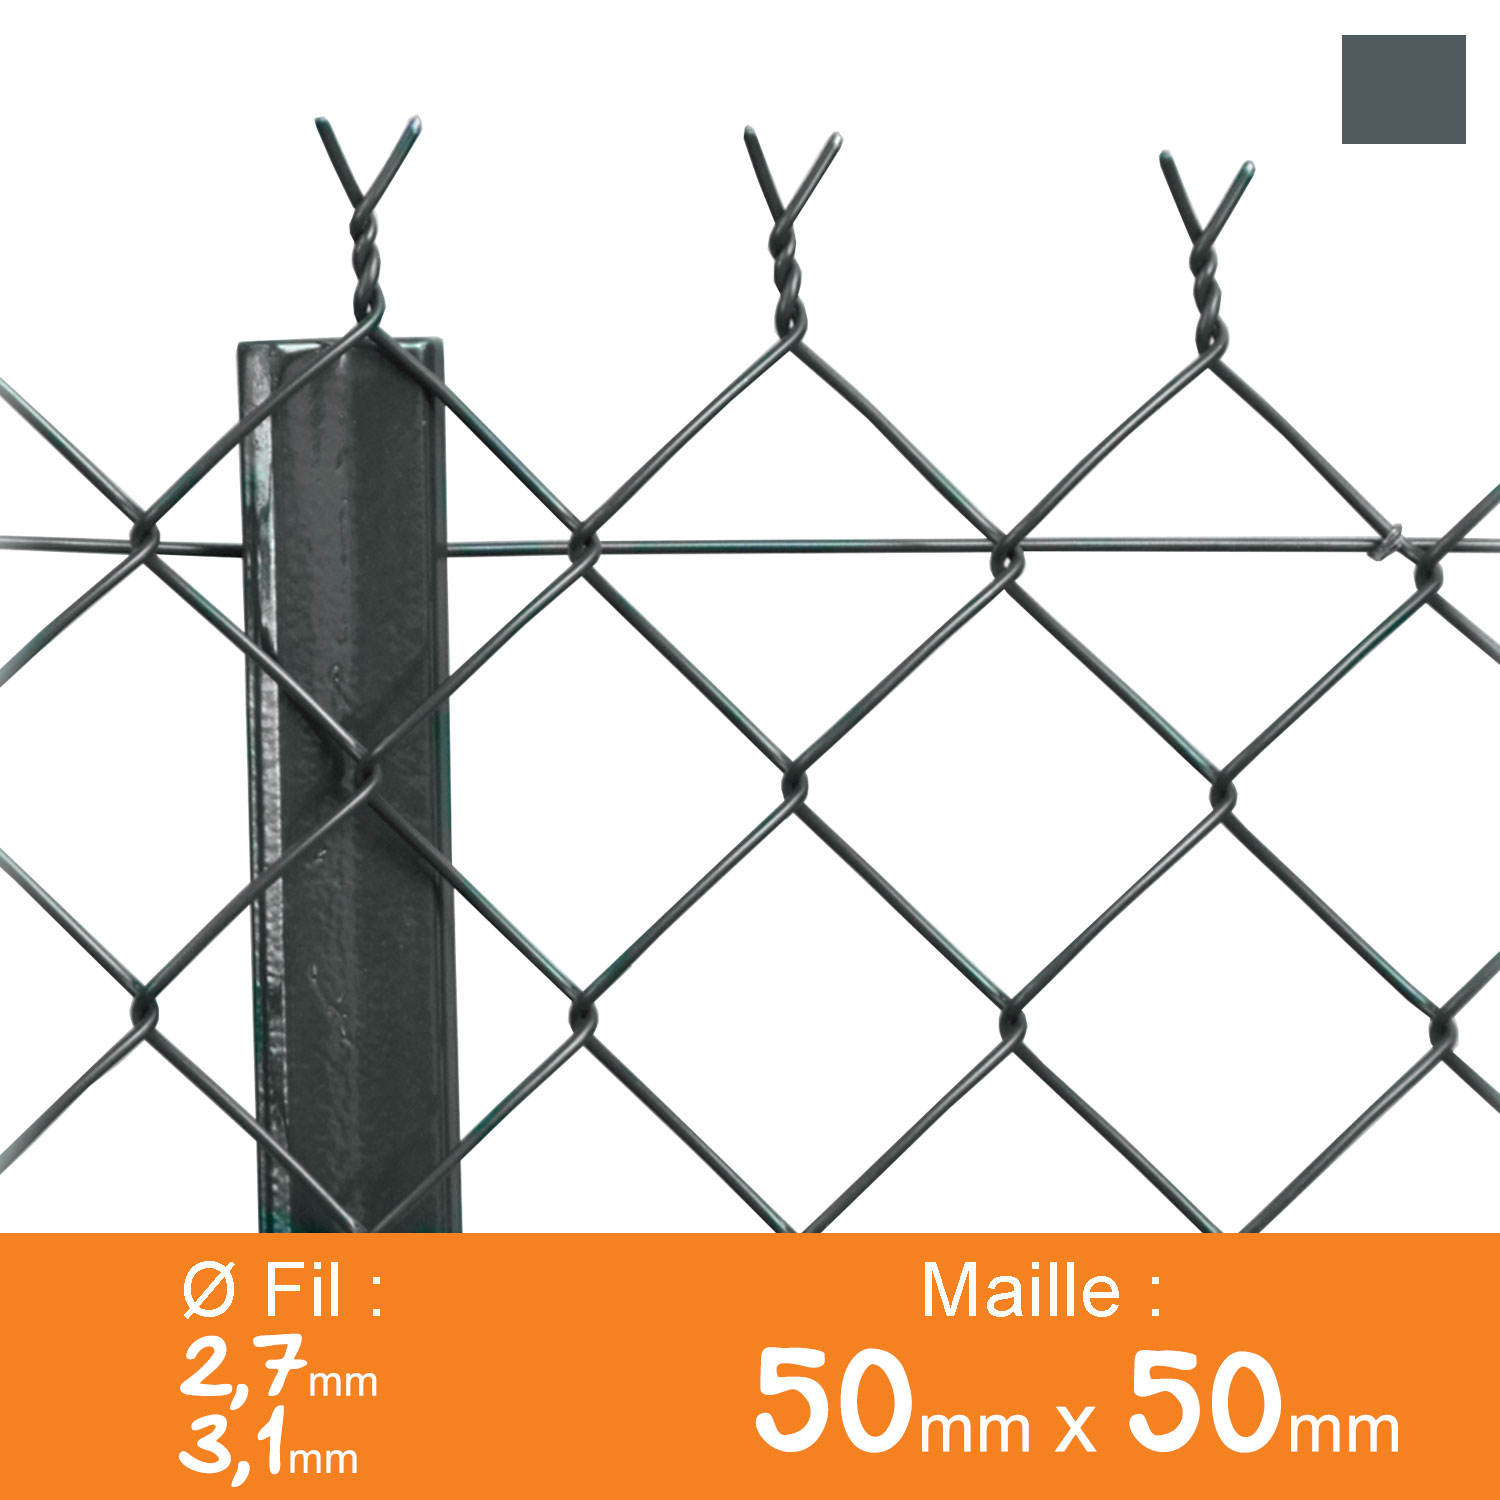 Grillage simple torsion 50 x 50 mm - Ø 2,7 / 3,1 mm - Lg. 25 m Gris Anthracite